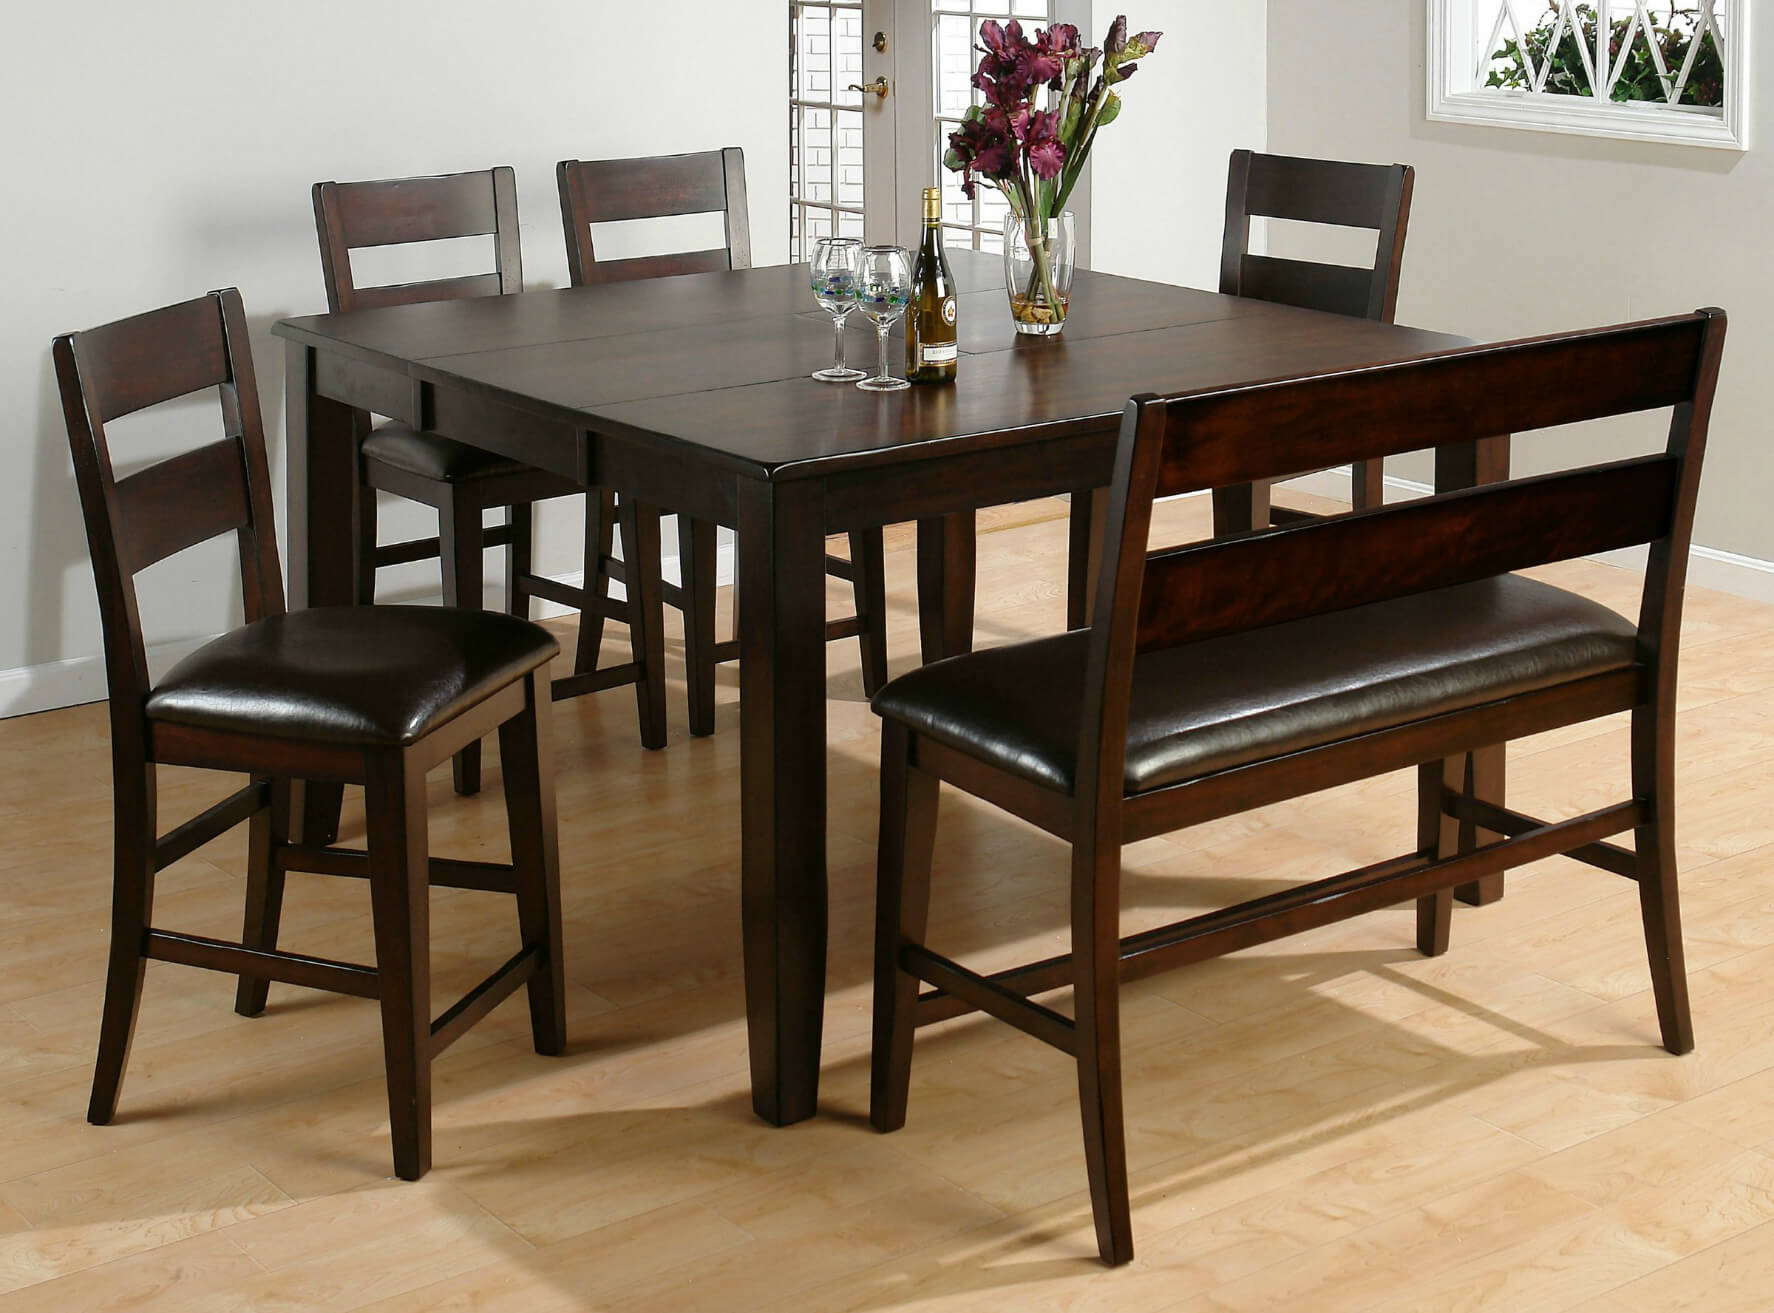 Heres A Counter Height Square Dining Room Table With Bench Moreover The Includes